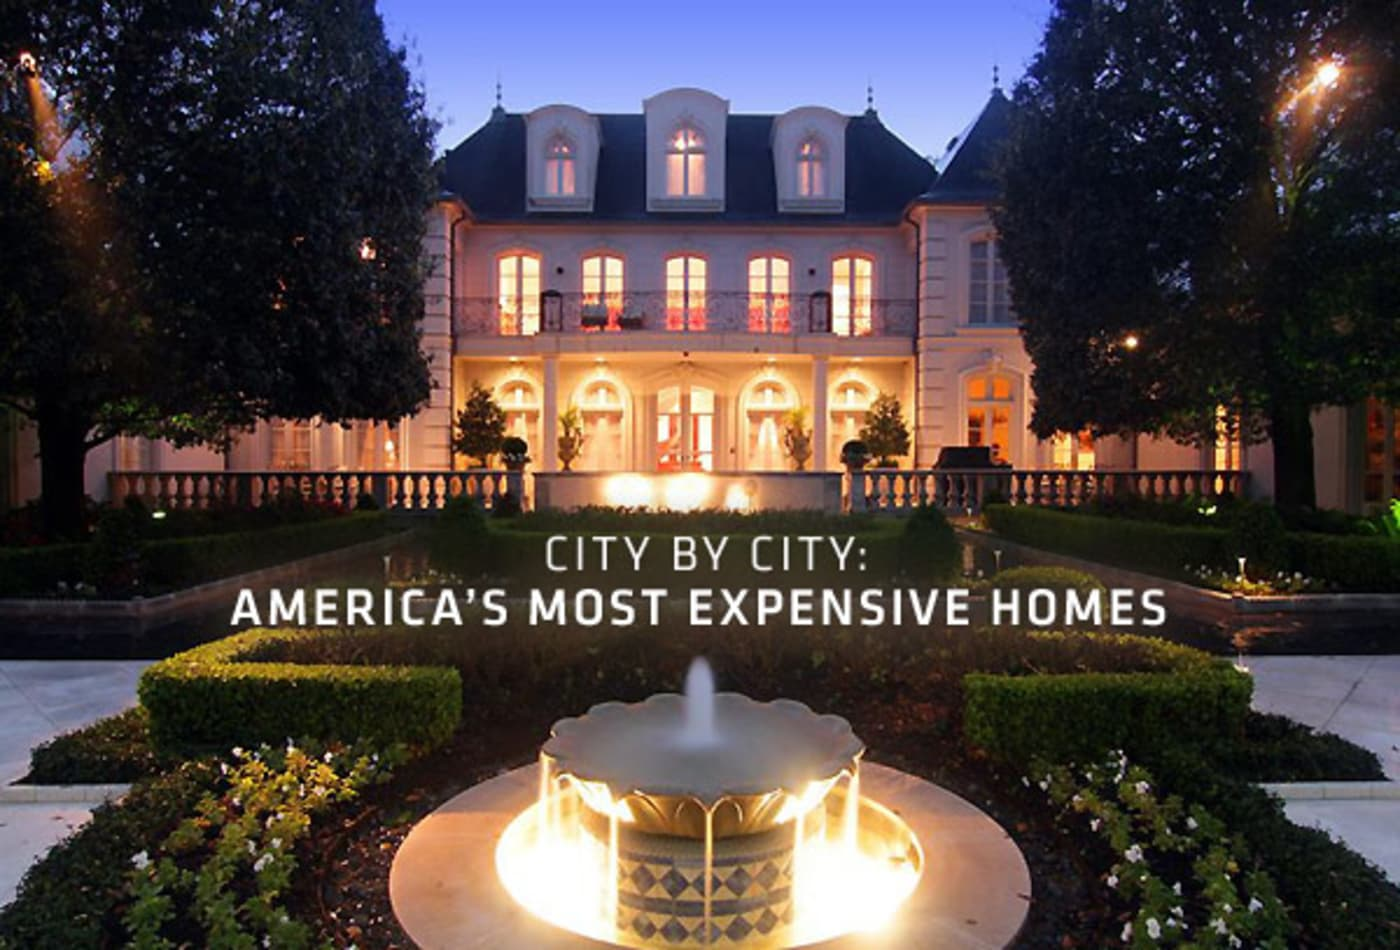 Cover-Americas-Most-Expensive-Homes-CNBC.jpg